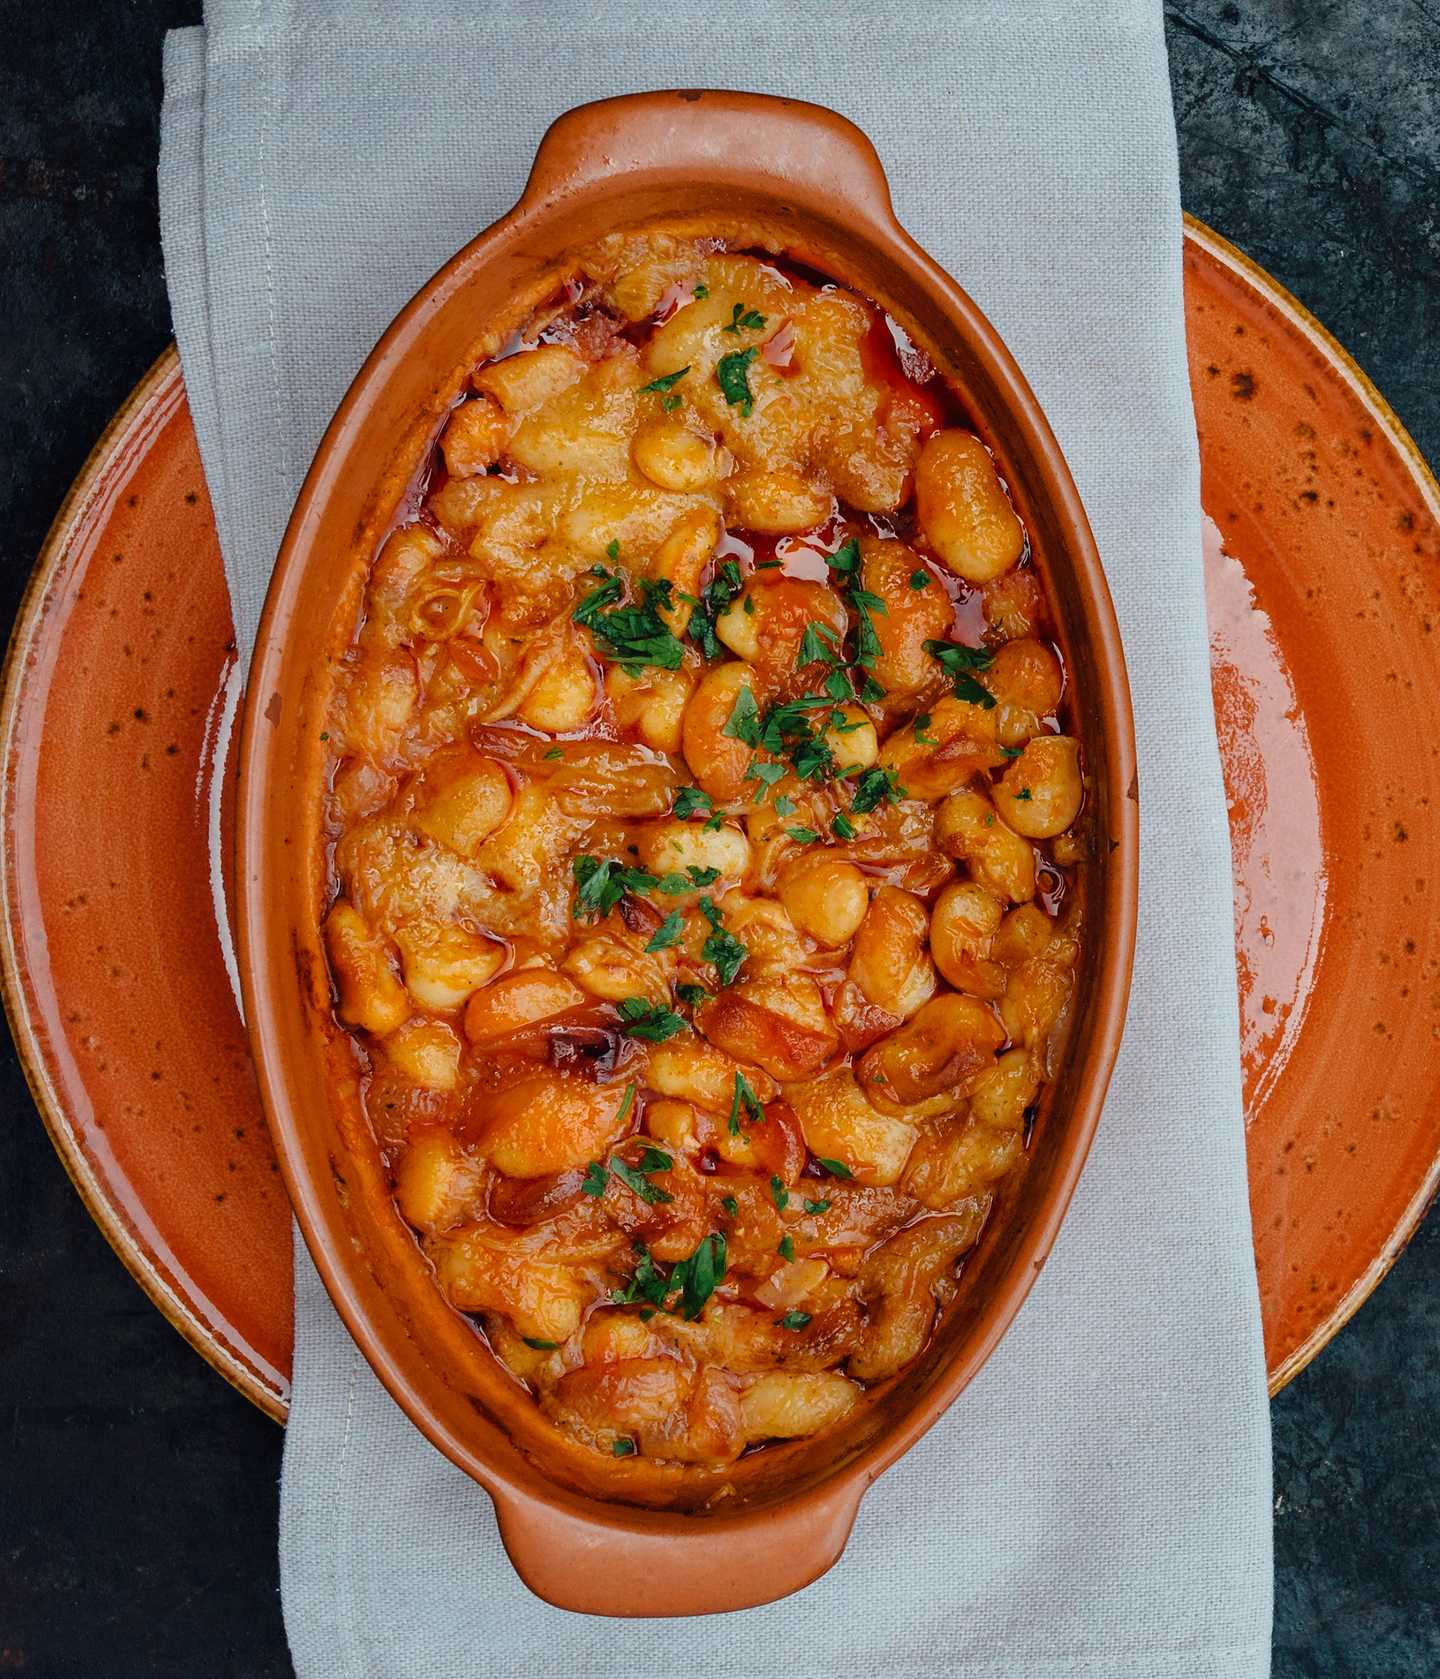 Dish of baked beans in sauce